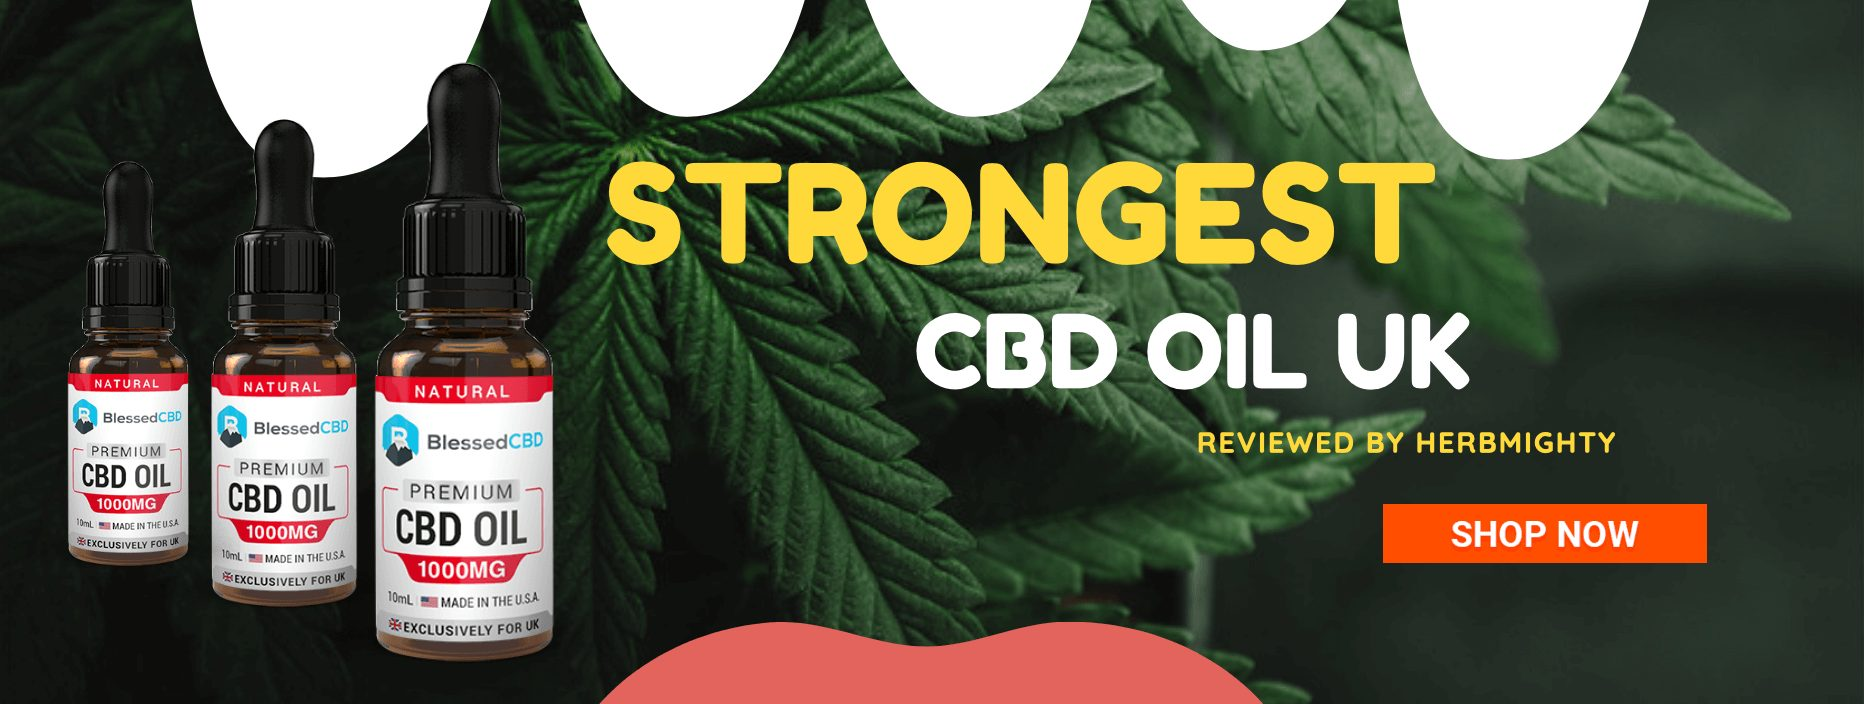 strongest CBD oil UK